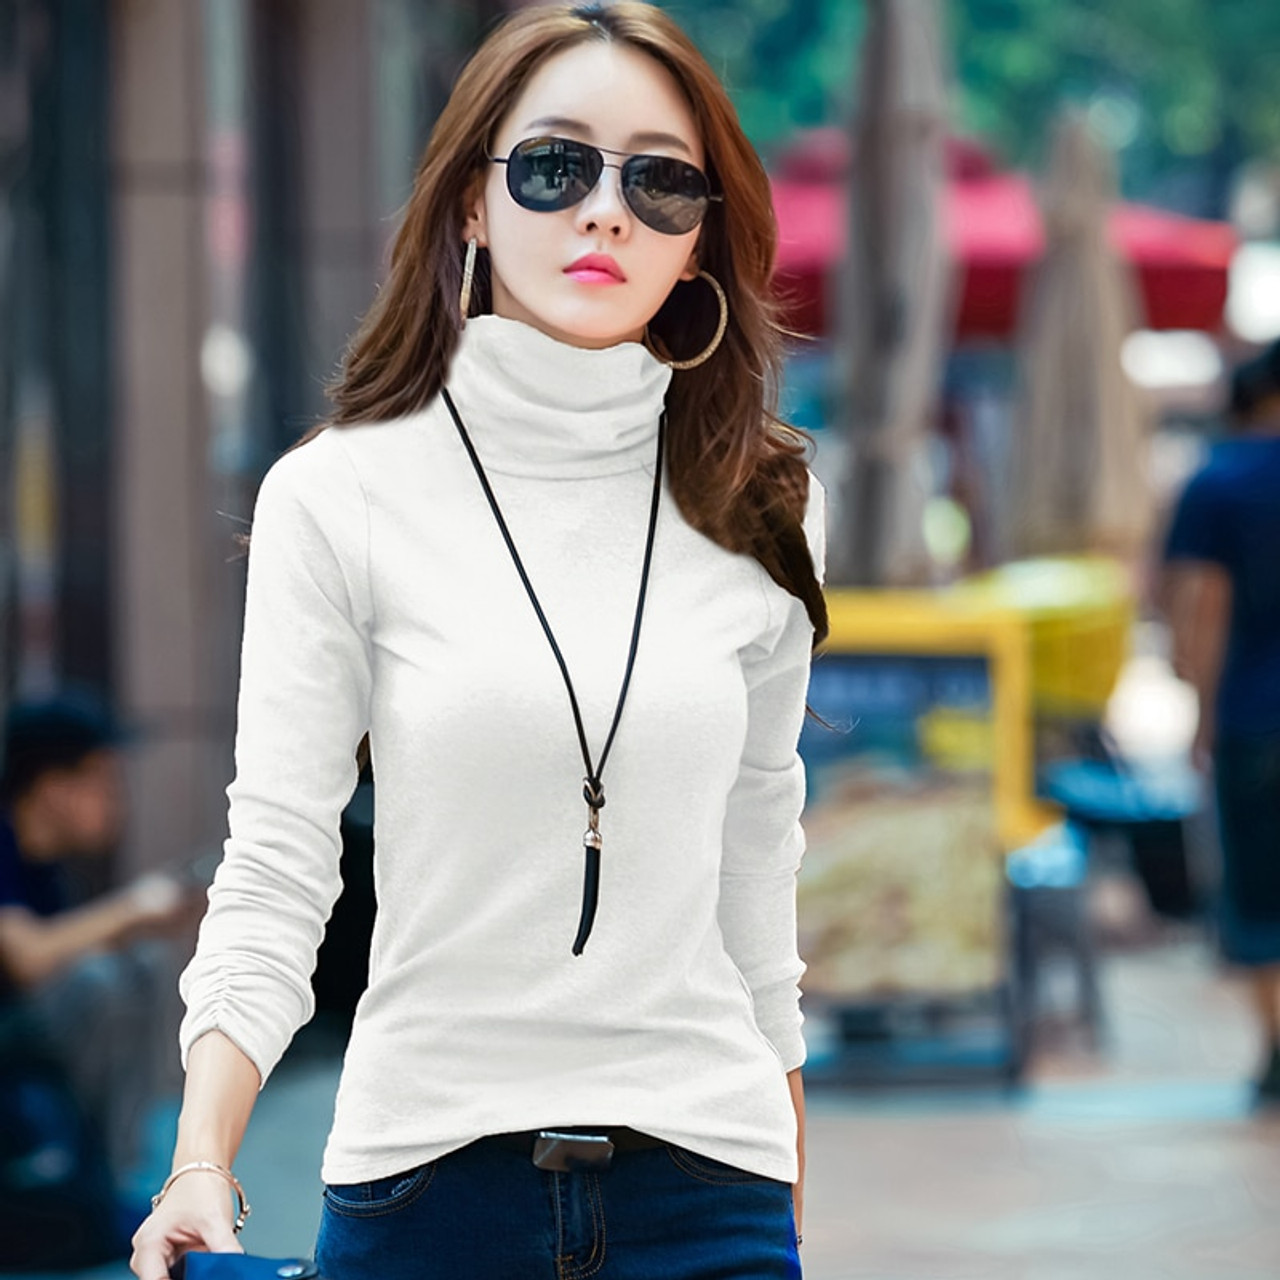 1b7a89306f9e2 ... New Casual Cotton Women T Shirt Long Sleeve Turtleneck Velvet Winter  Tops Tee Fashion 2018 Bottoming ...